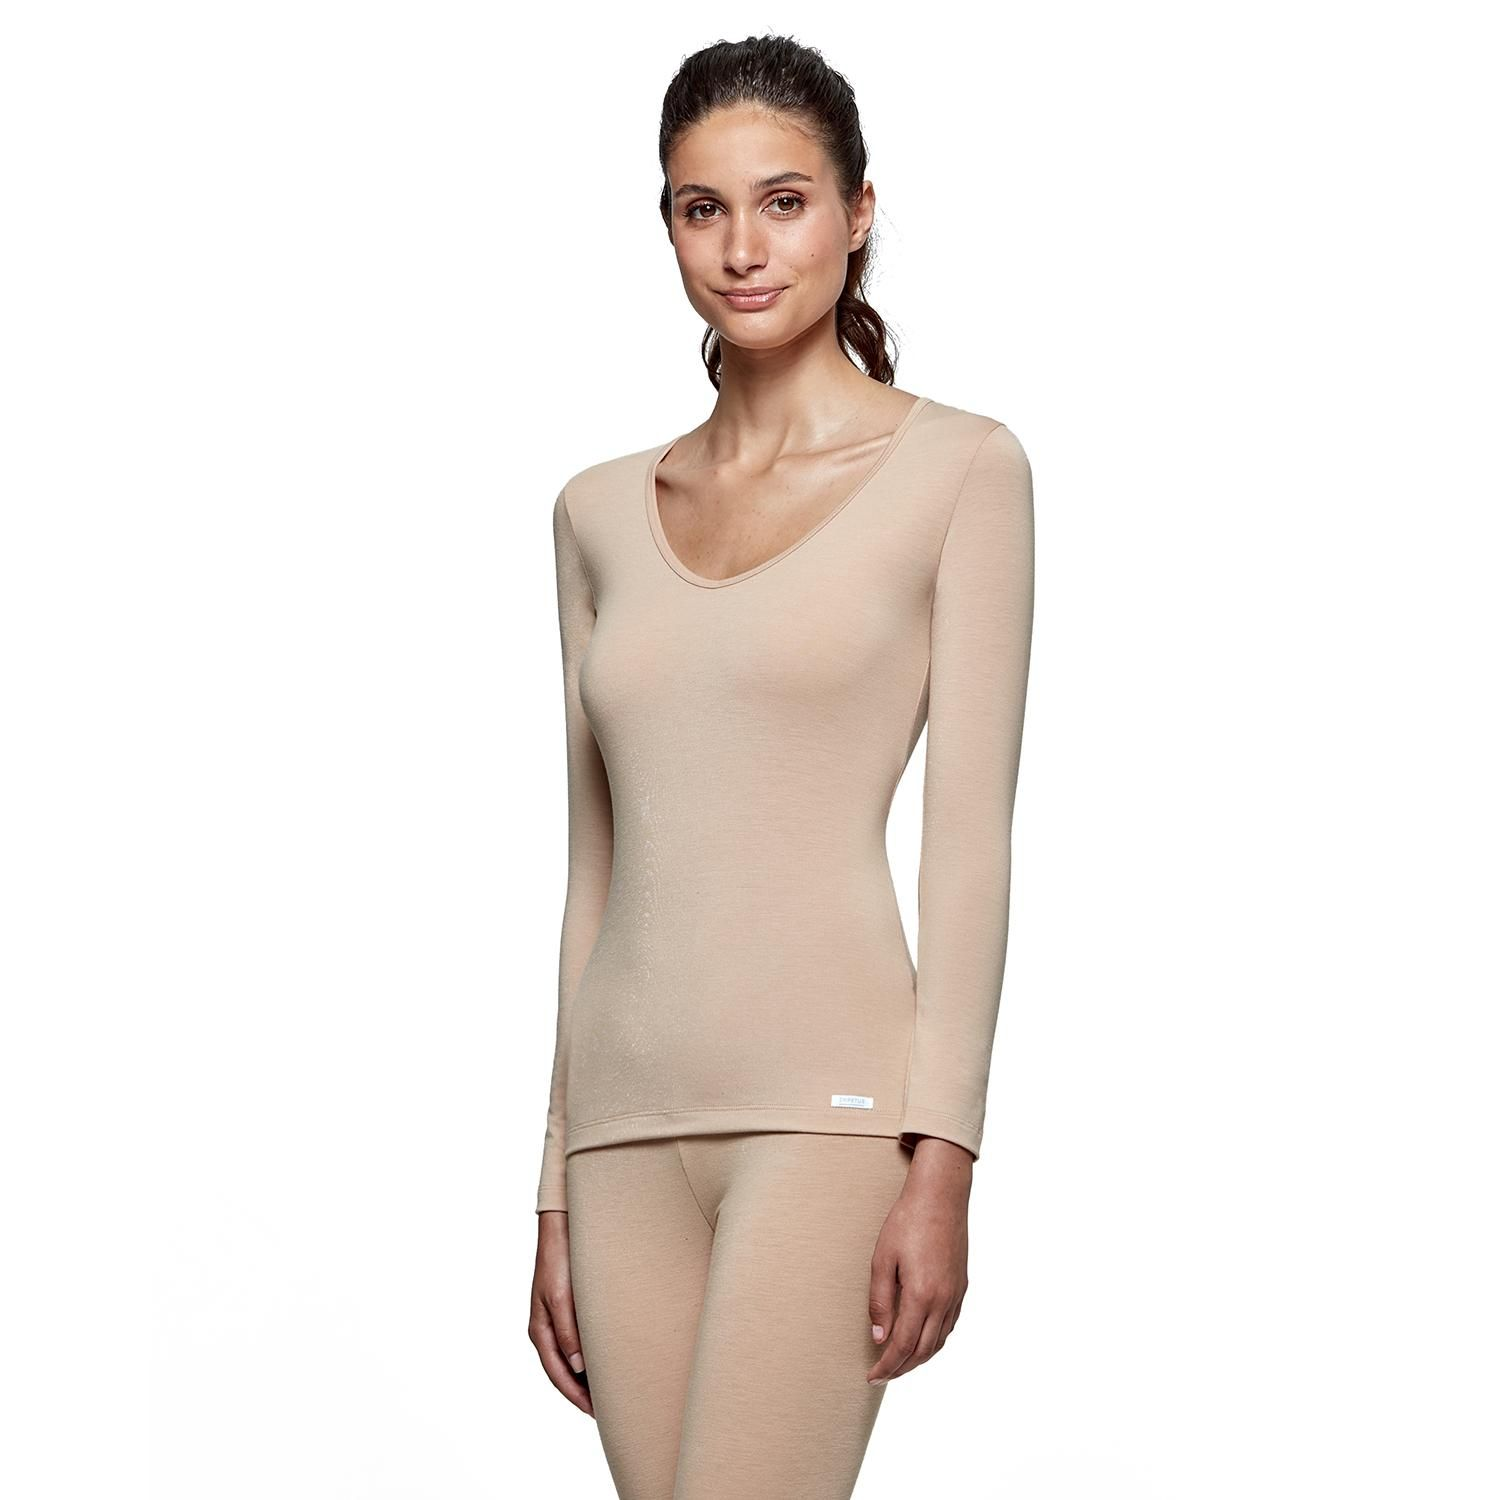 Camisola Thermo Bege